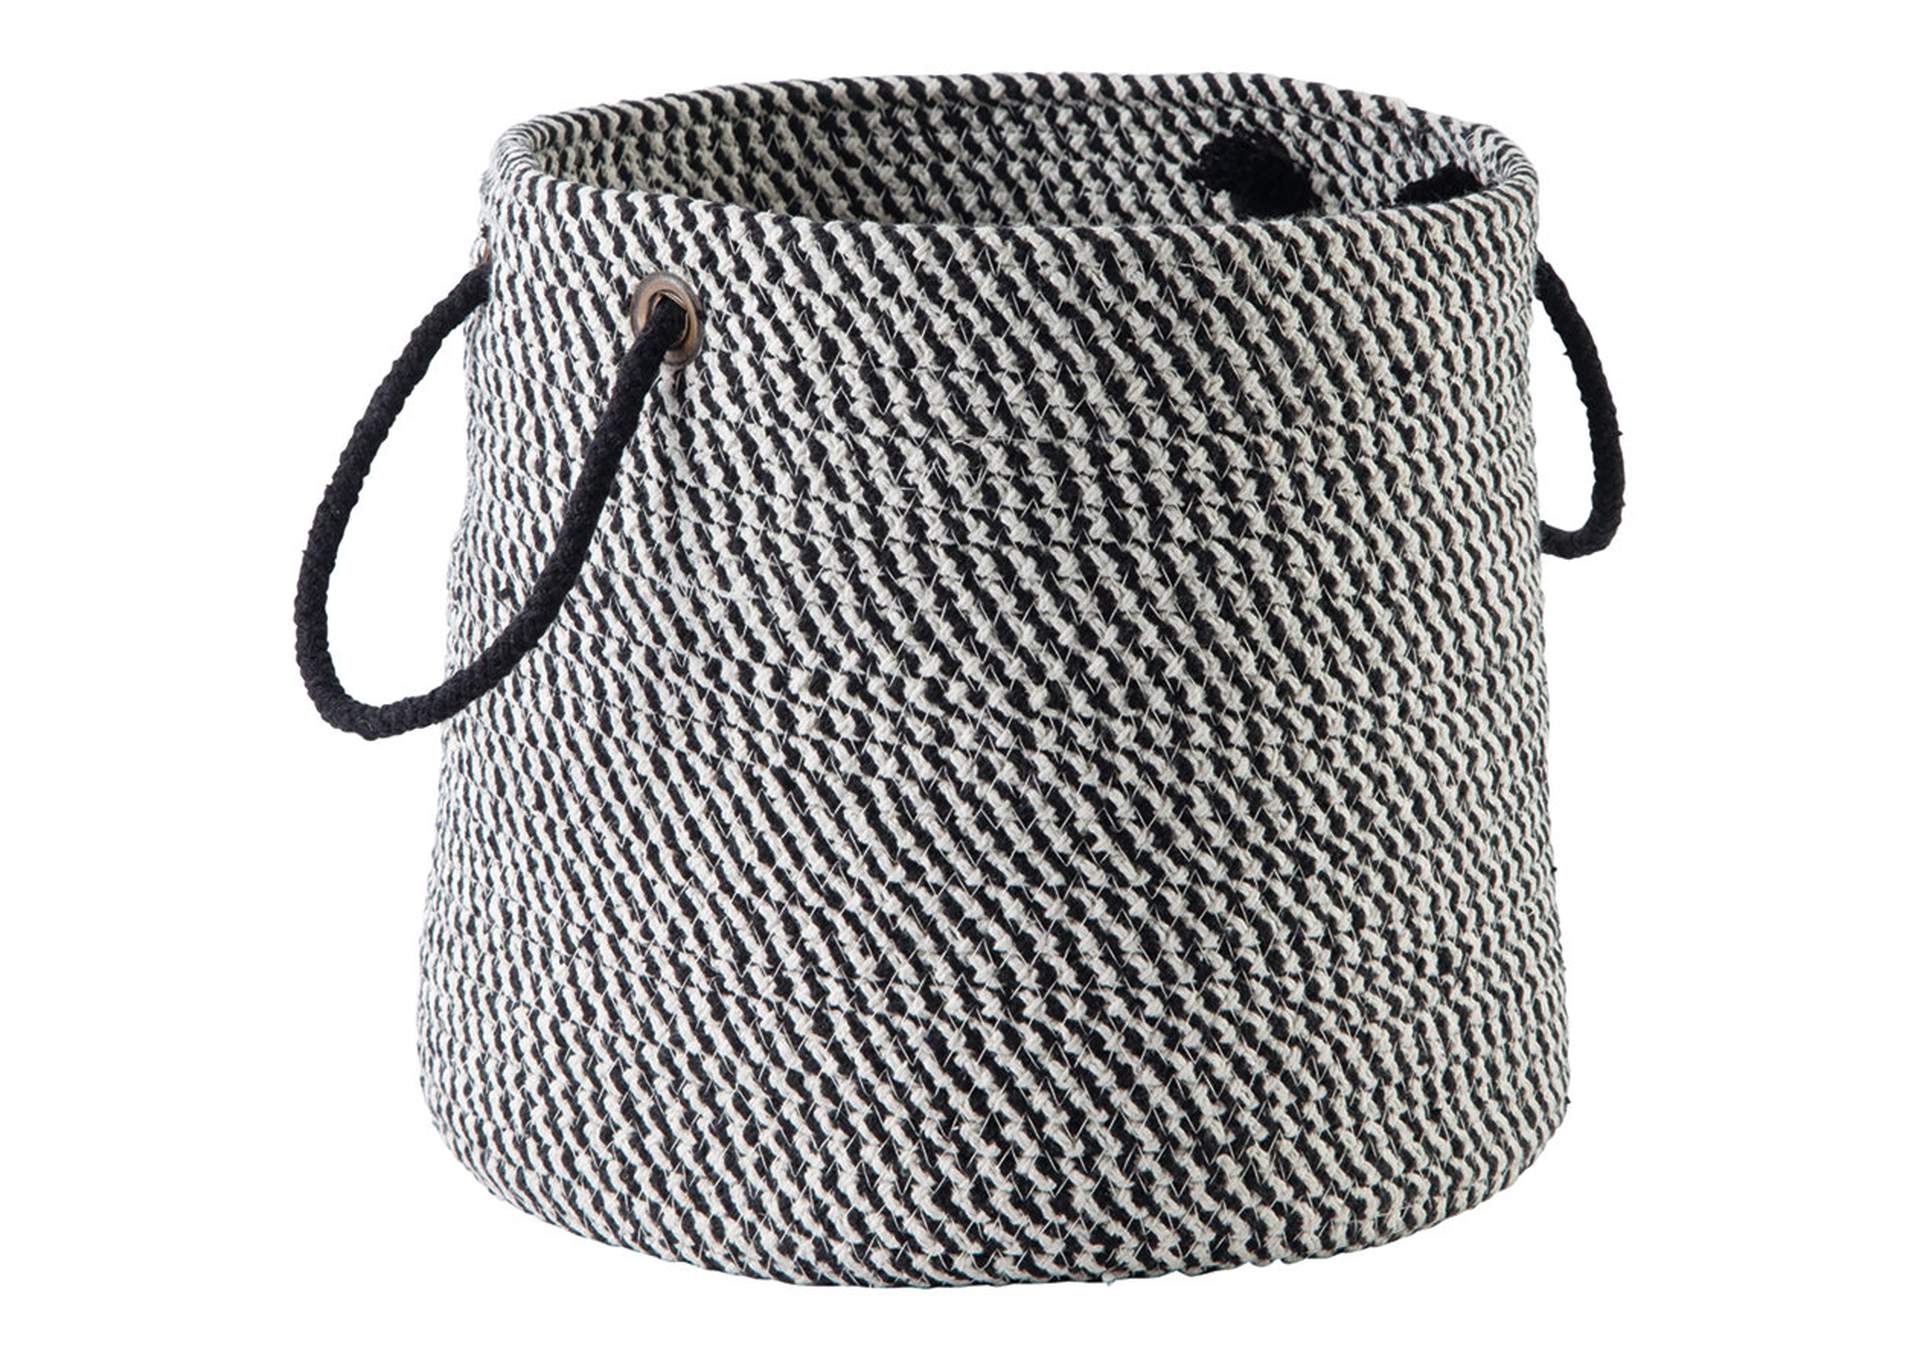 Eider Basket,Signature Design By Ashley